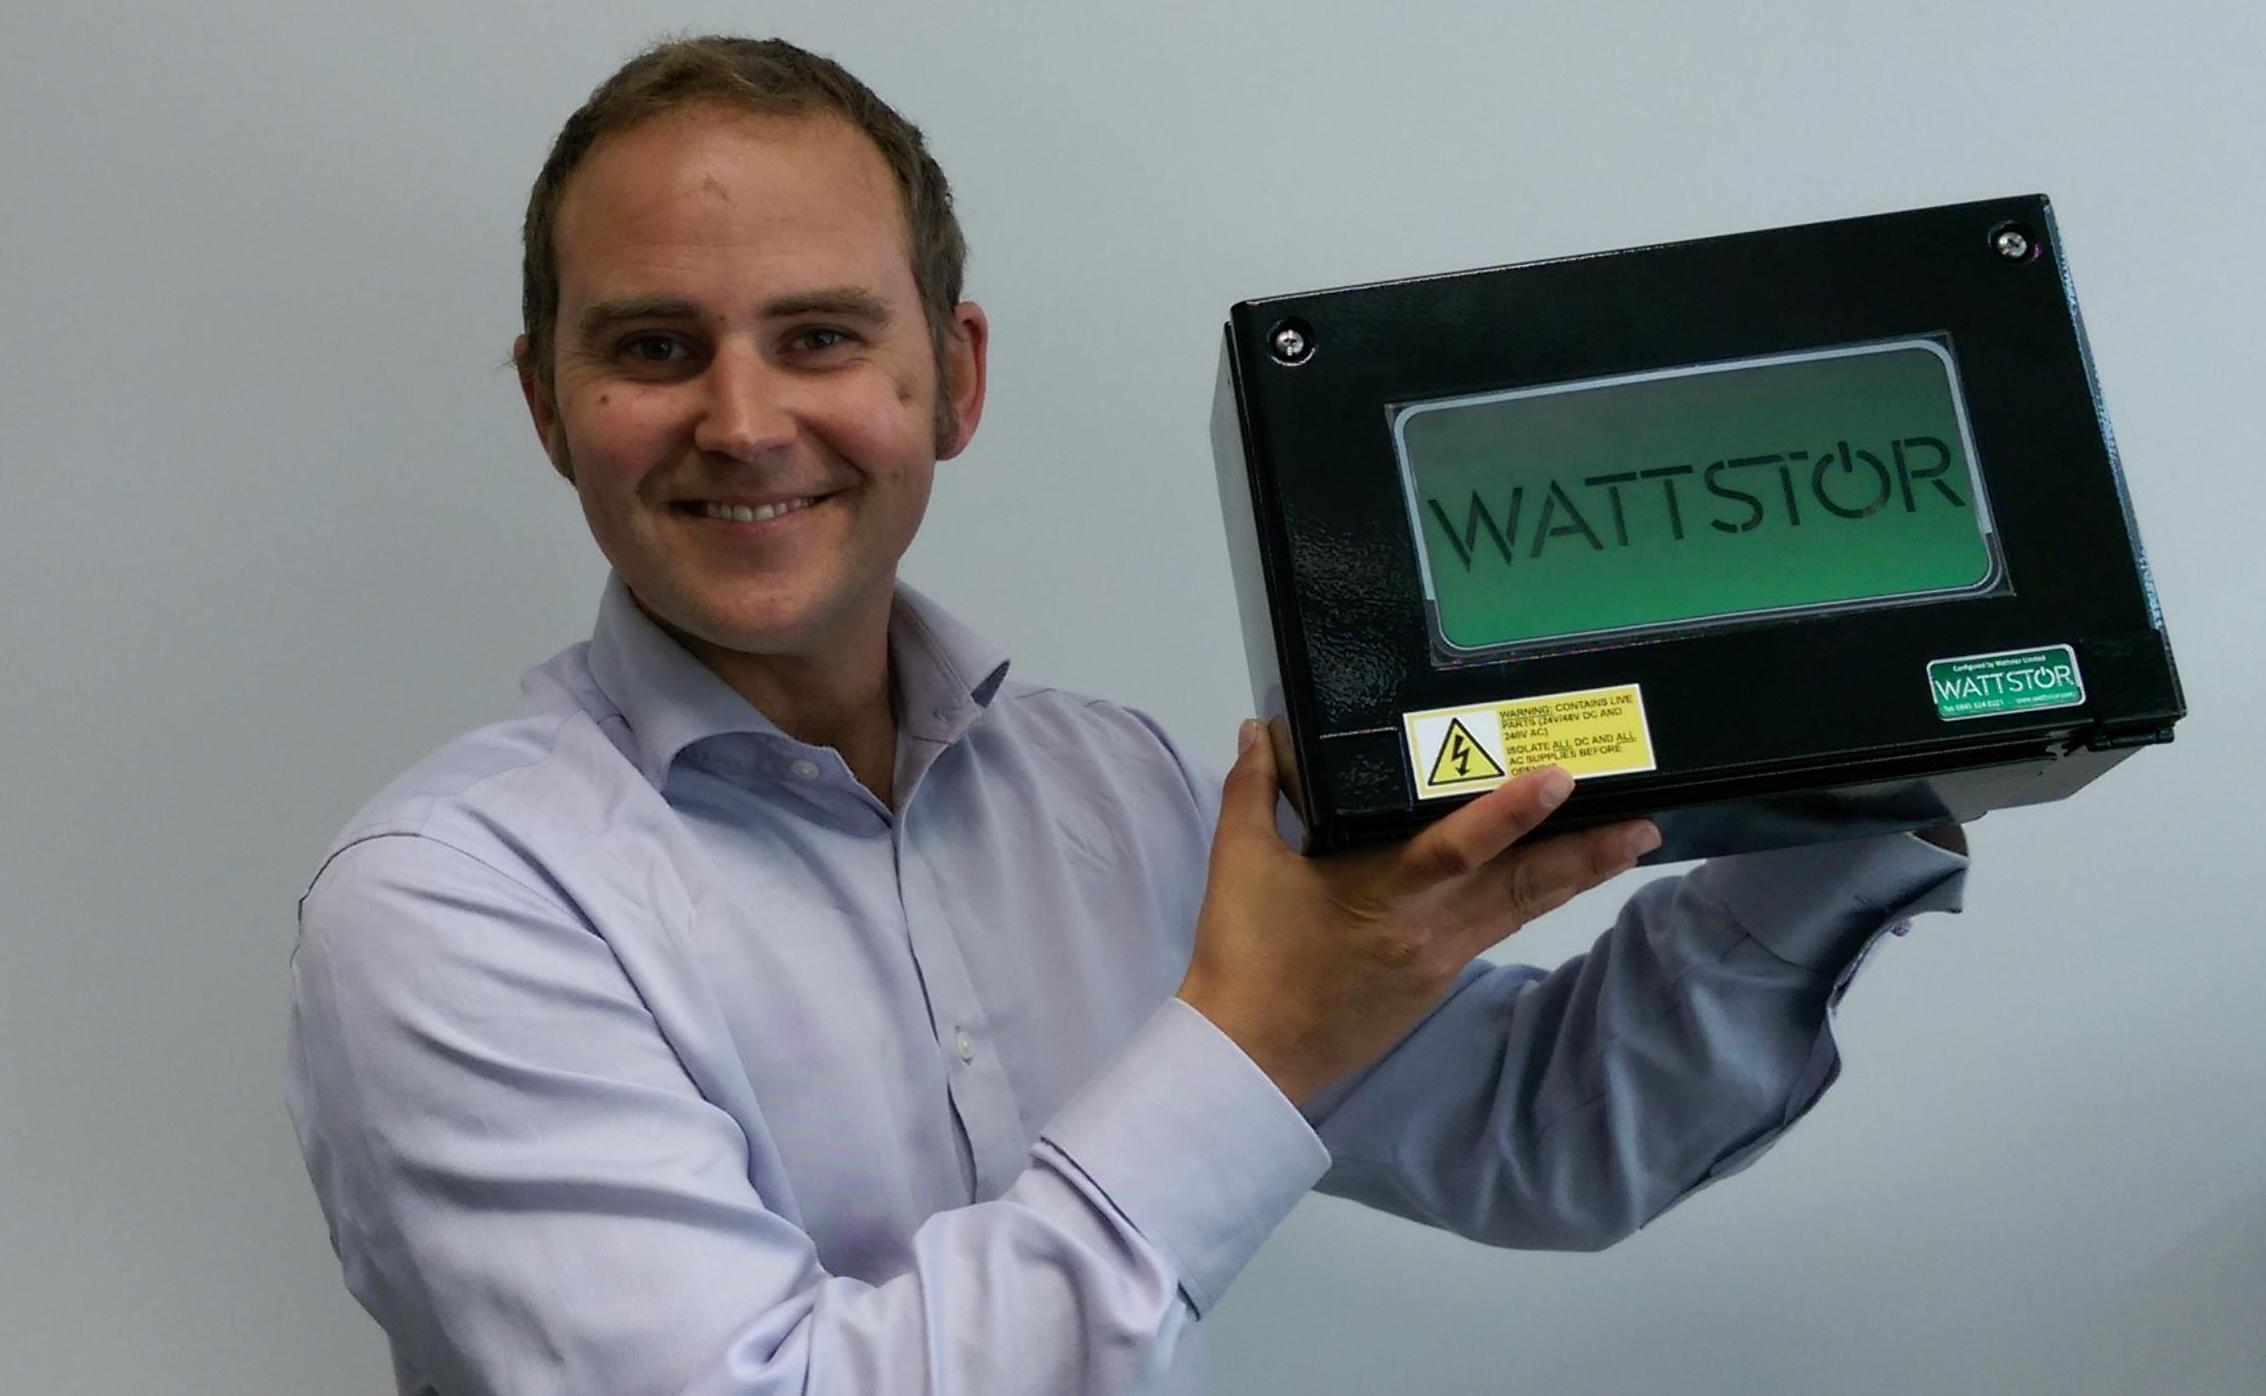 Wattstor's MD, Mark Smith, with his company's export-limiting smart switch